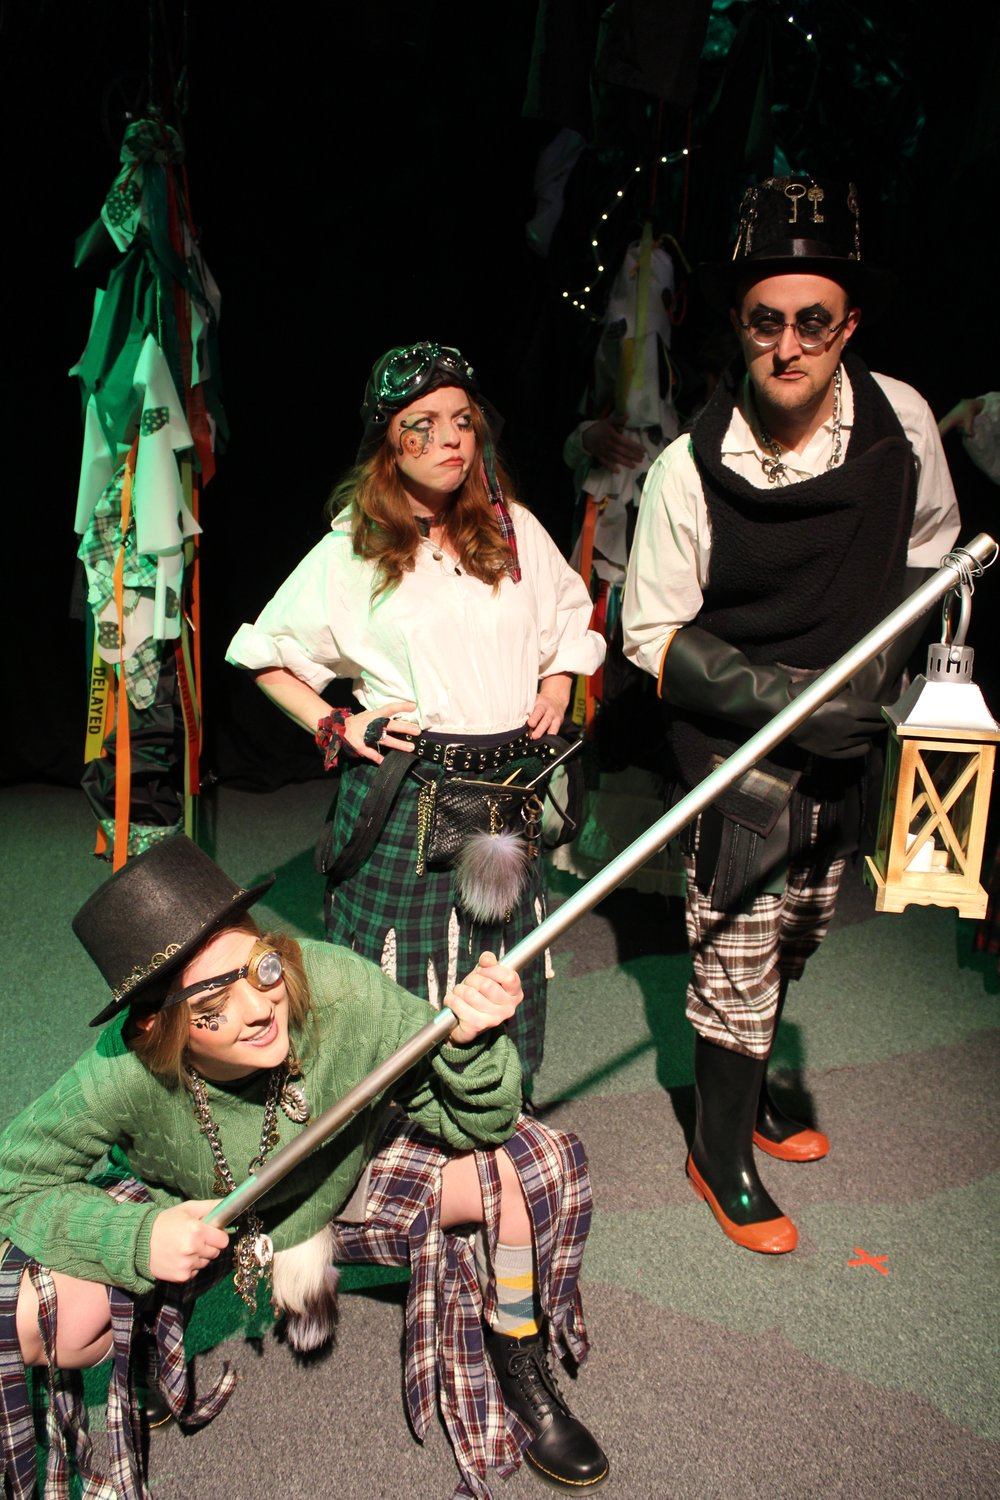 Hannah Carmichael  as The Minion,  Karin Carr  as The Lass, and  Ryan Barnett  as The Mischanter